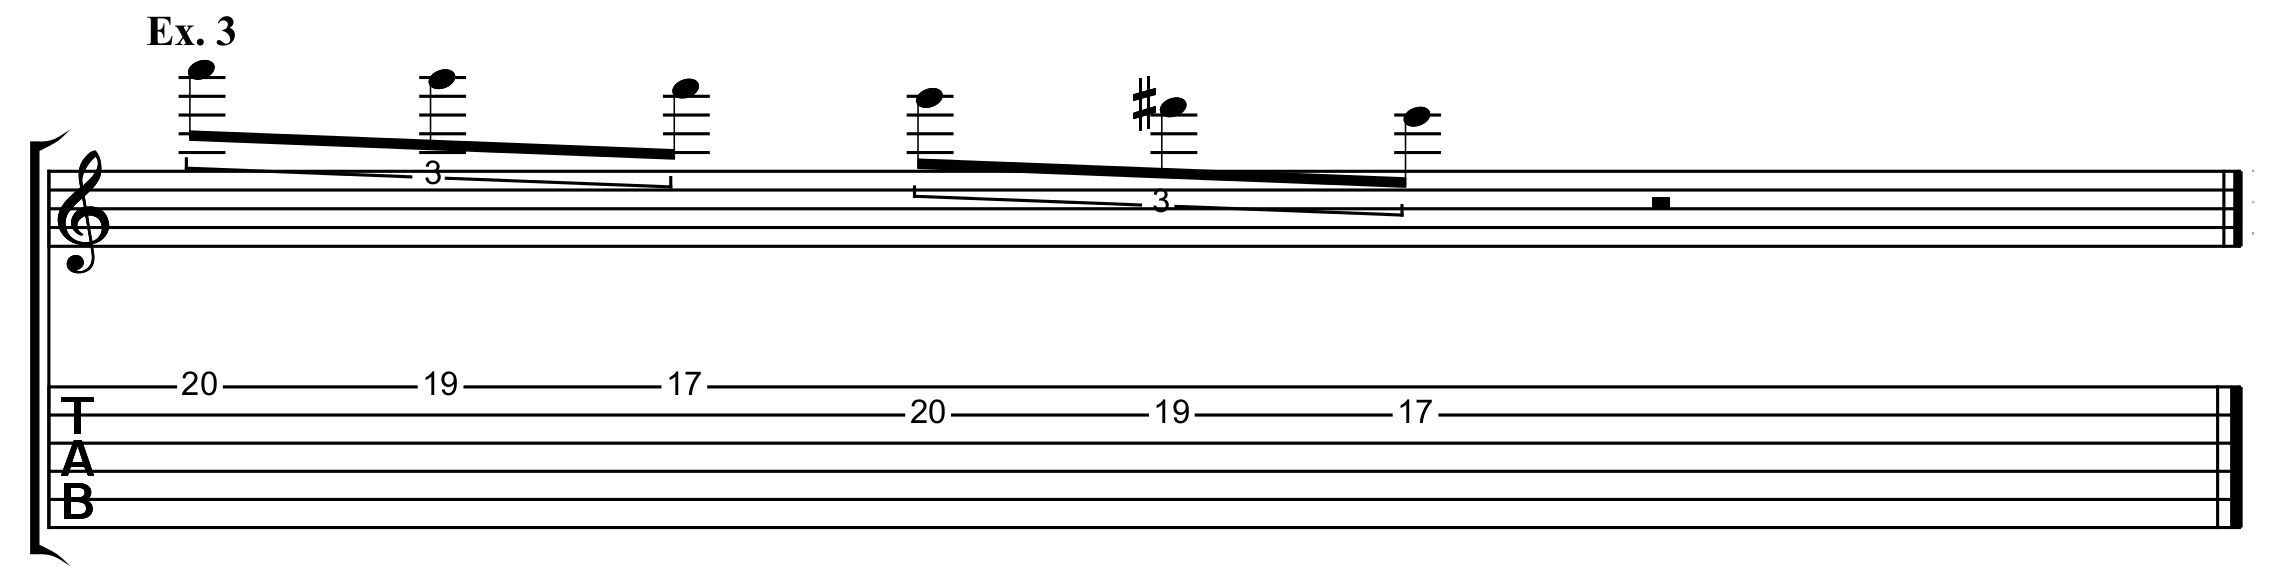 a descending patter using the E natural minor scale on guitar